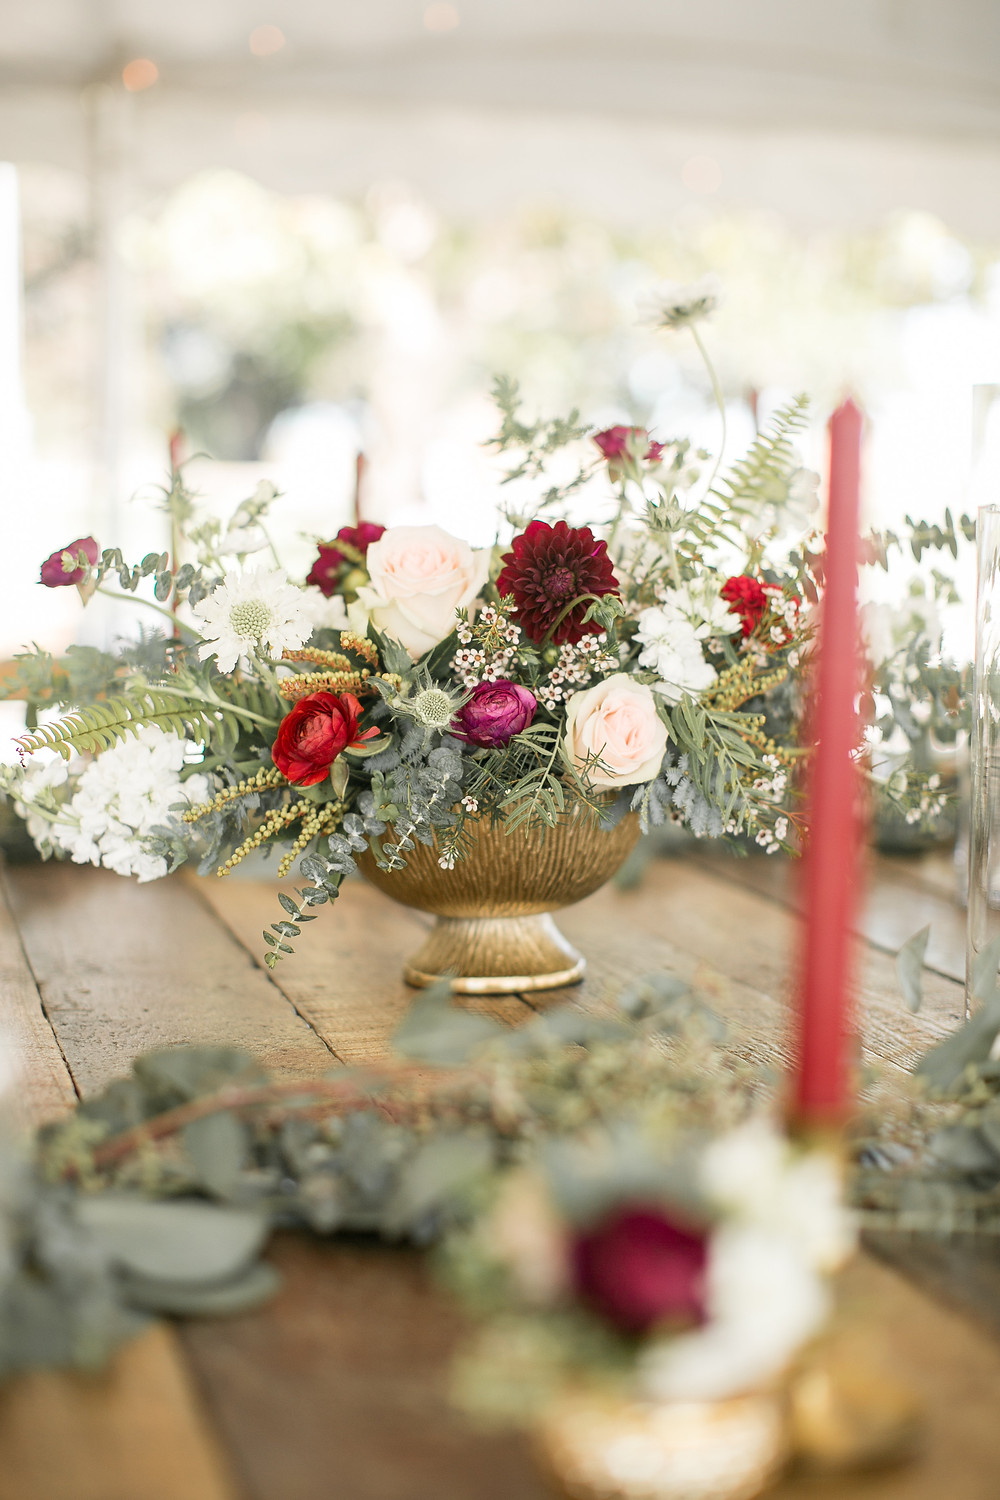 wedding reception flower centerpiece by studio bloom iowa in shades of burgundy and blush in gold compote vase